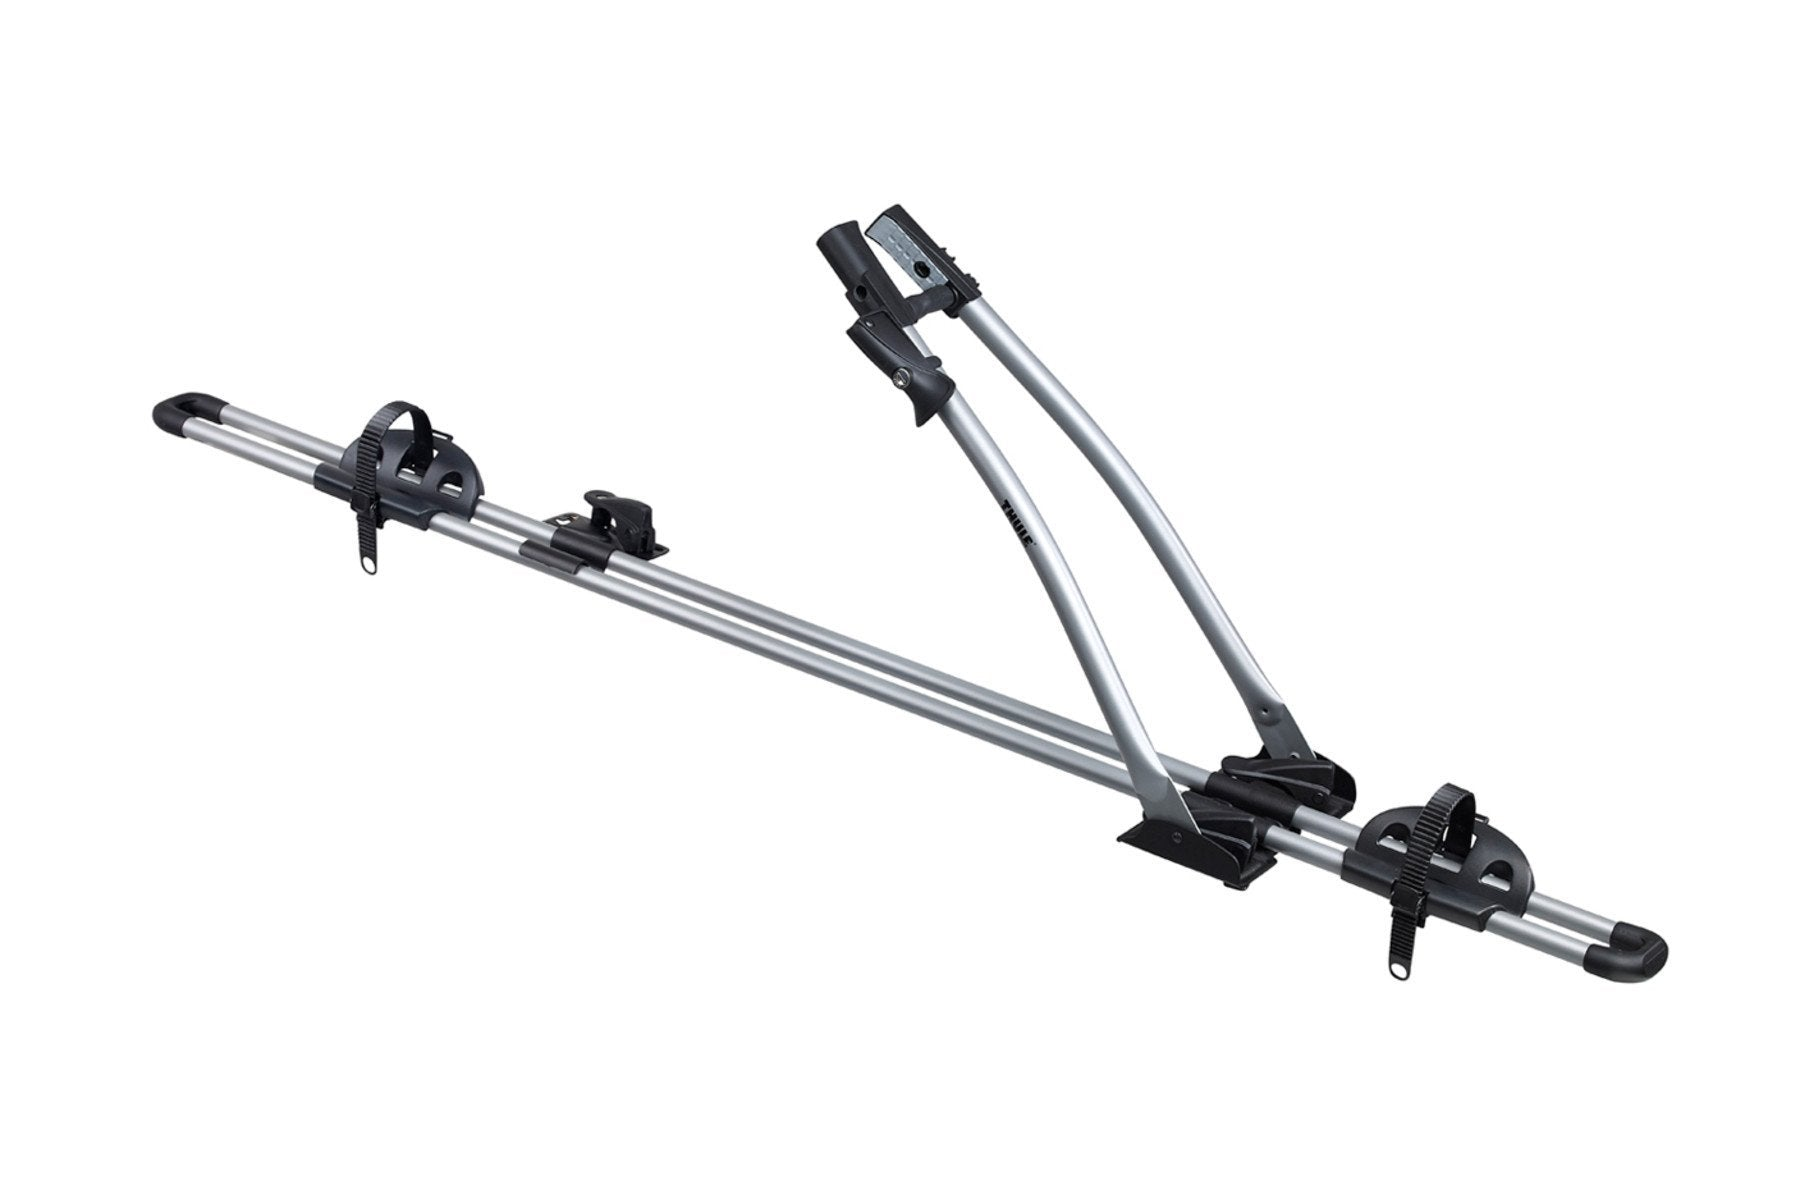 Thule Freeride 532 Roof Mounted Bike Carrier Accessory - Rack Thule